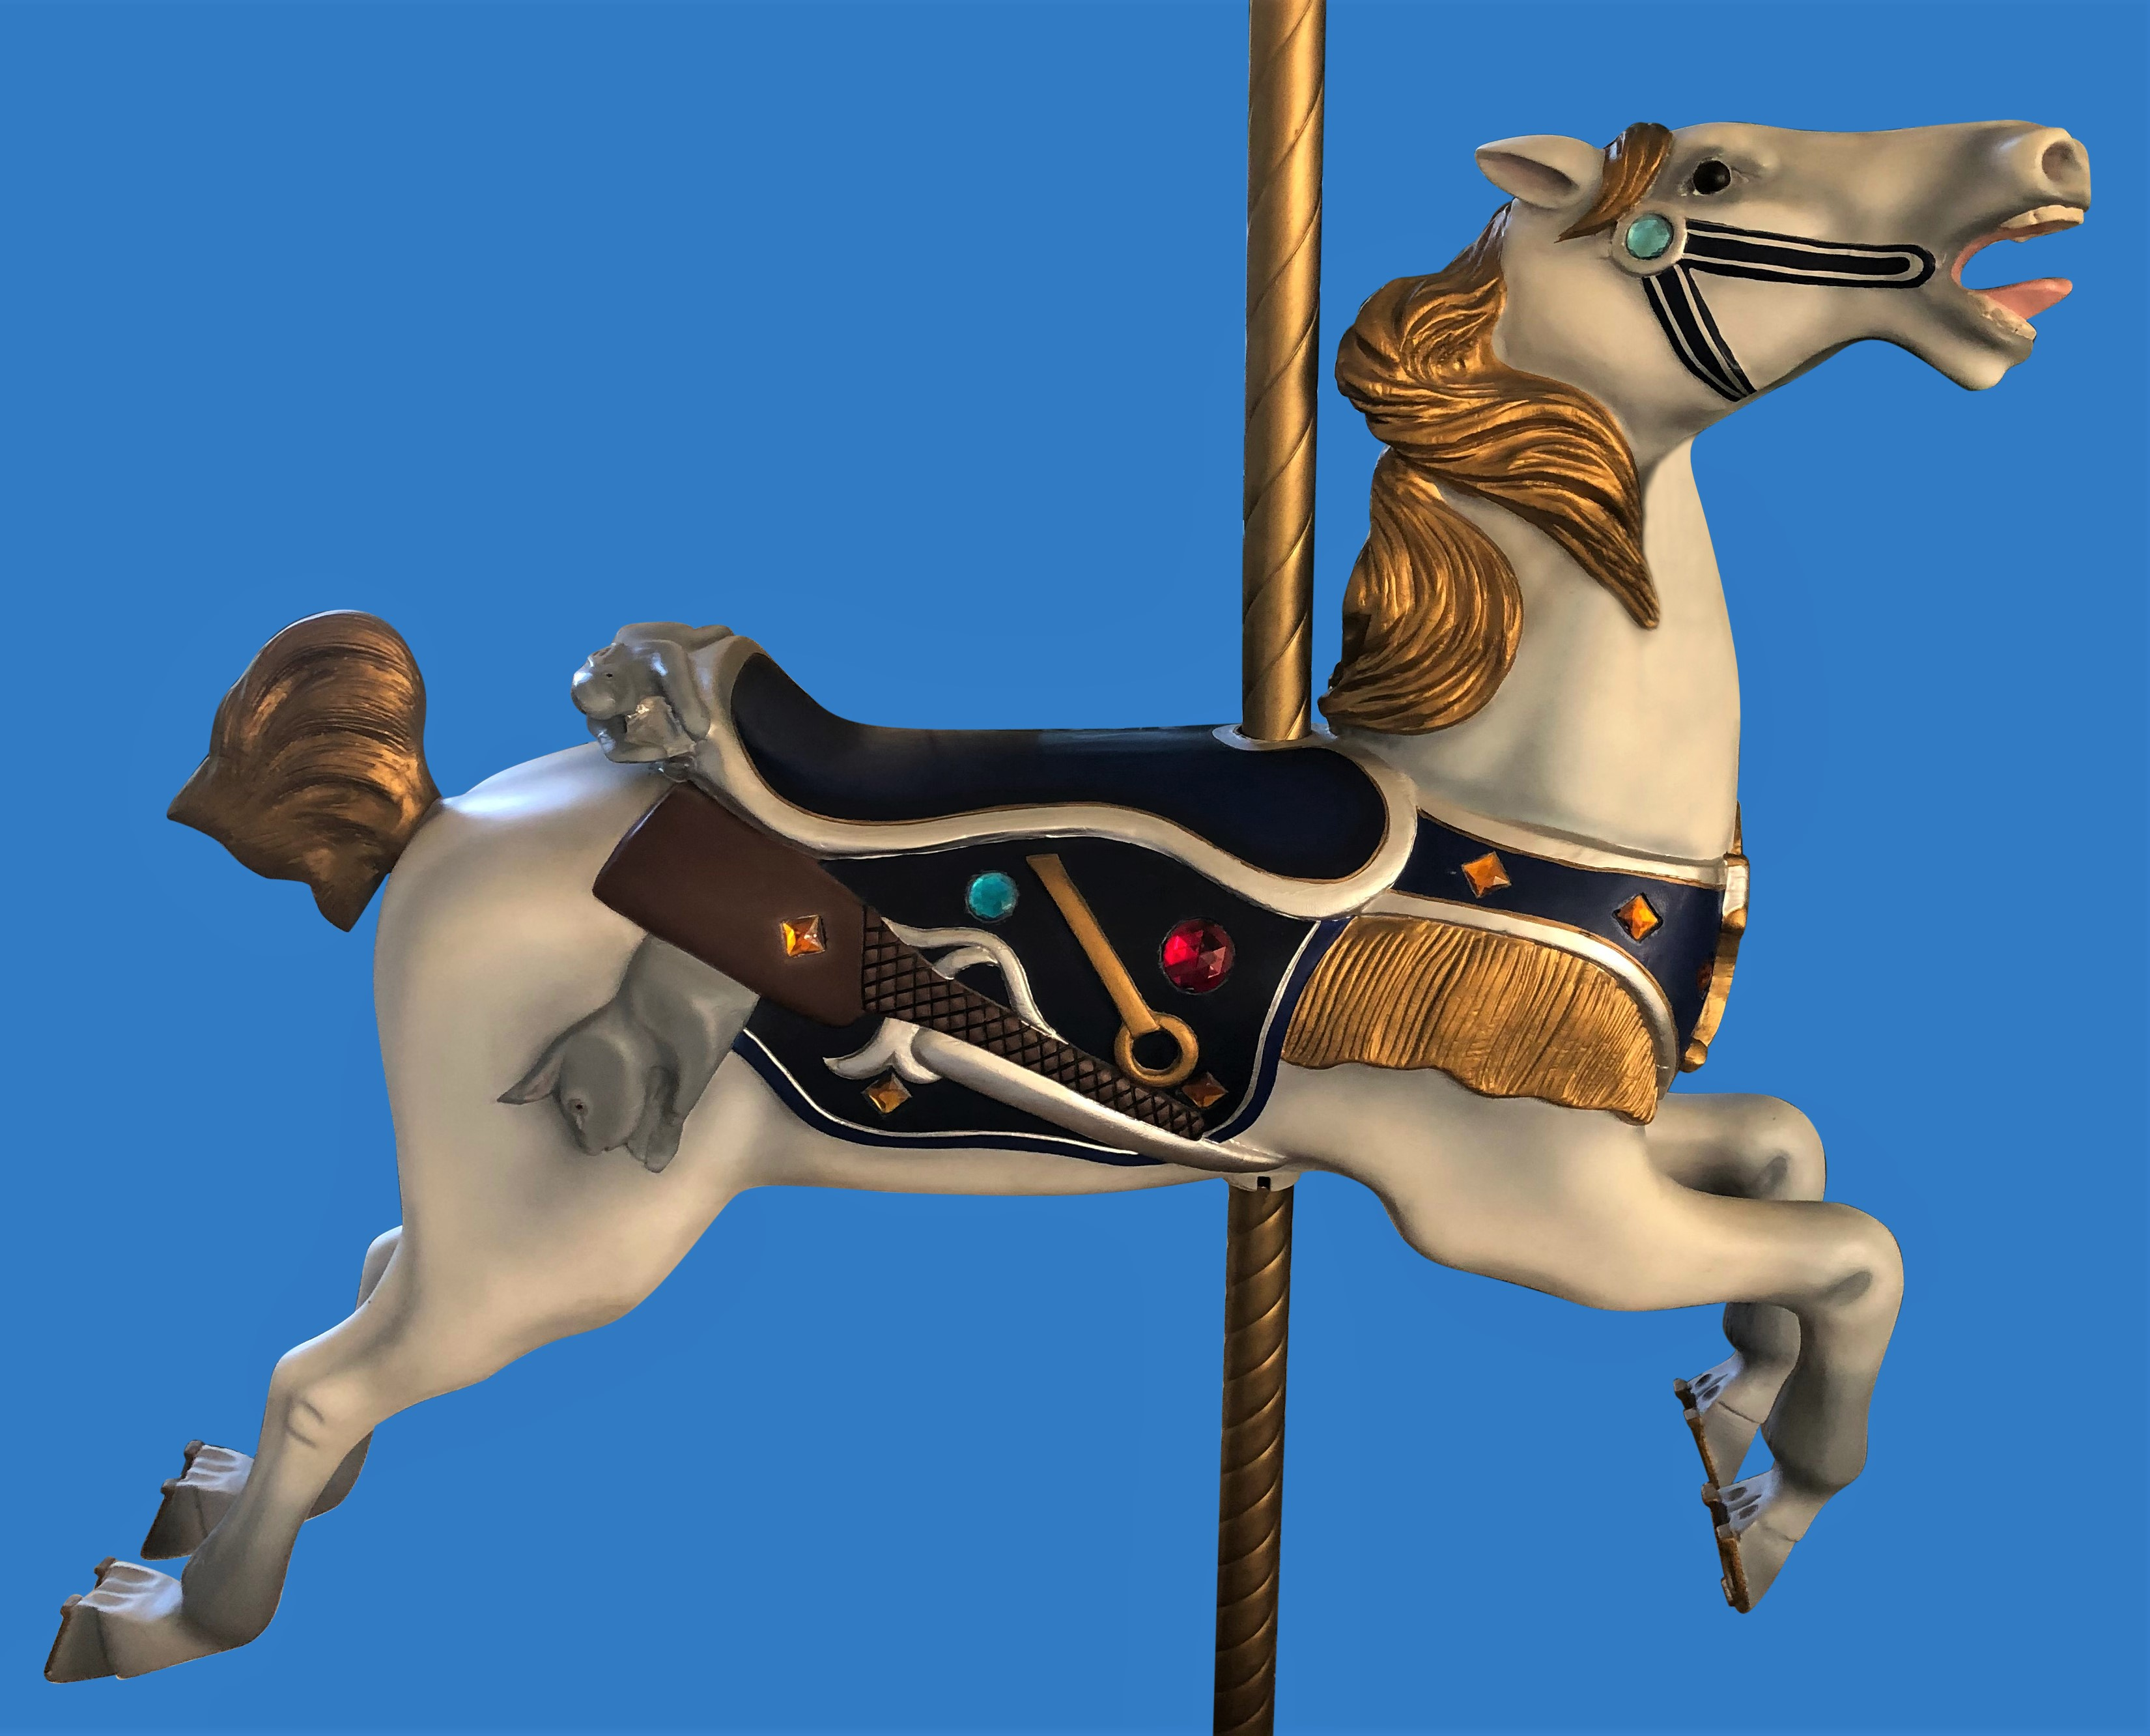 Abilene Parker Hunter's w/ Rifle & Rabbit  Mane Outer Row Carousel Horse